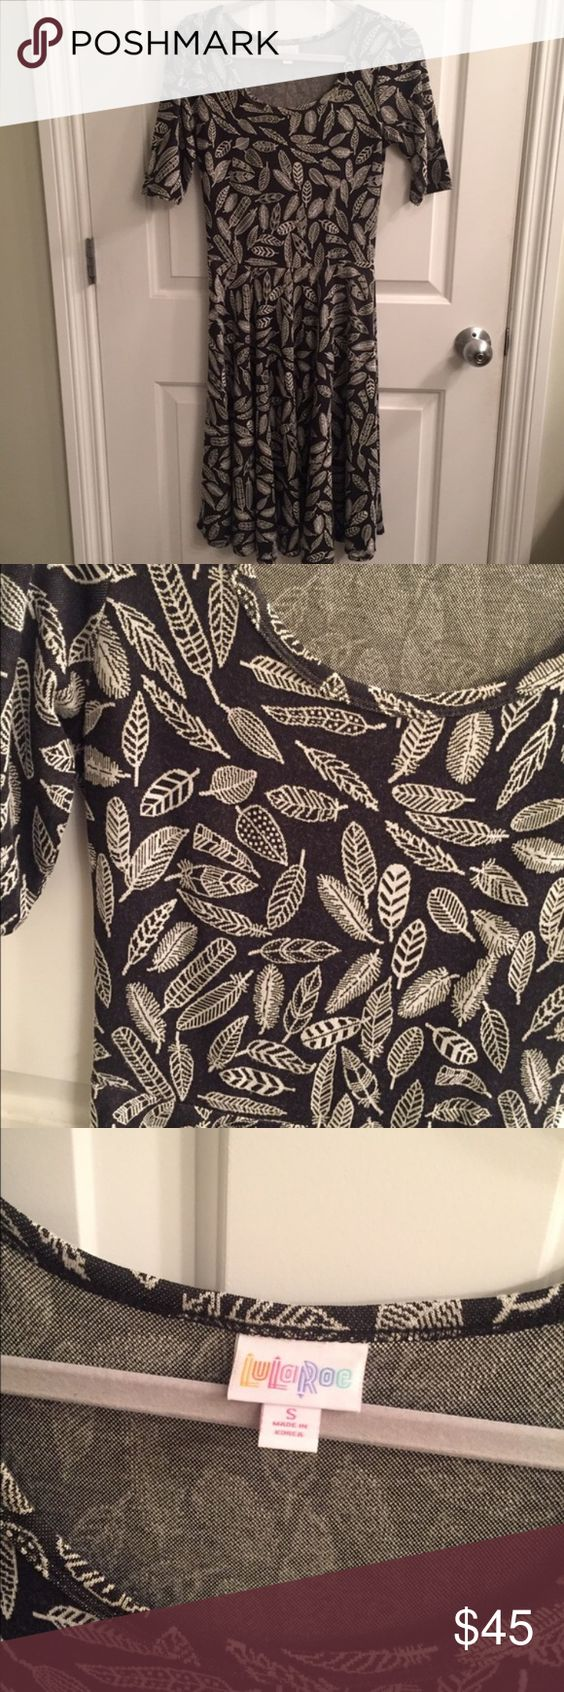 Lularoe LLR Nicole dress feathers black and white Excellent condition, only worn once for a couple of hours. I love the pattern and feel of the dress, but I never reach for it. LuLaRoe Dresses